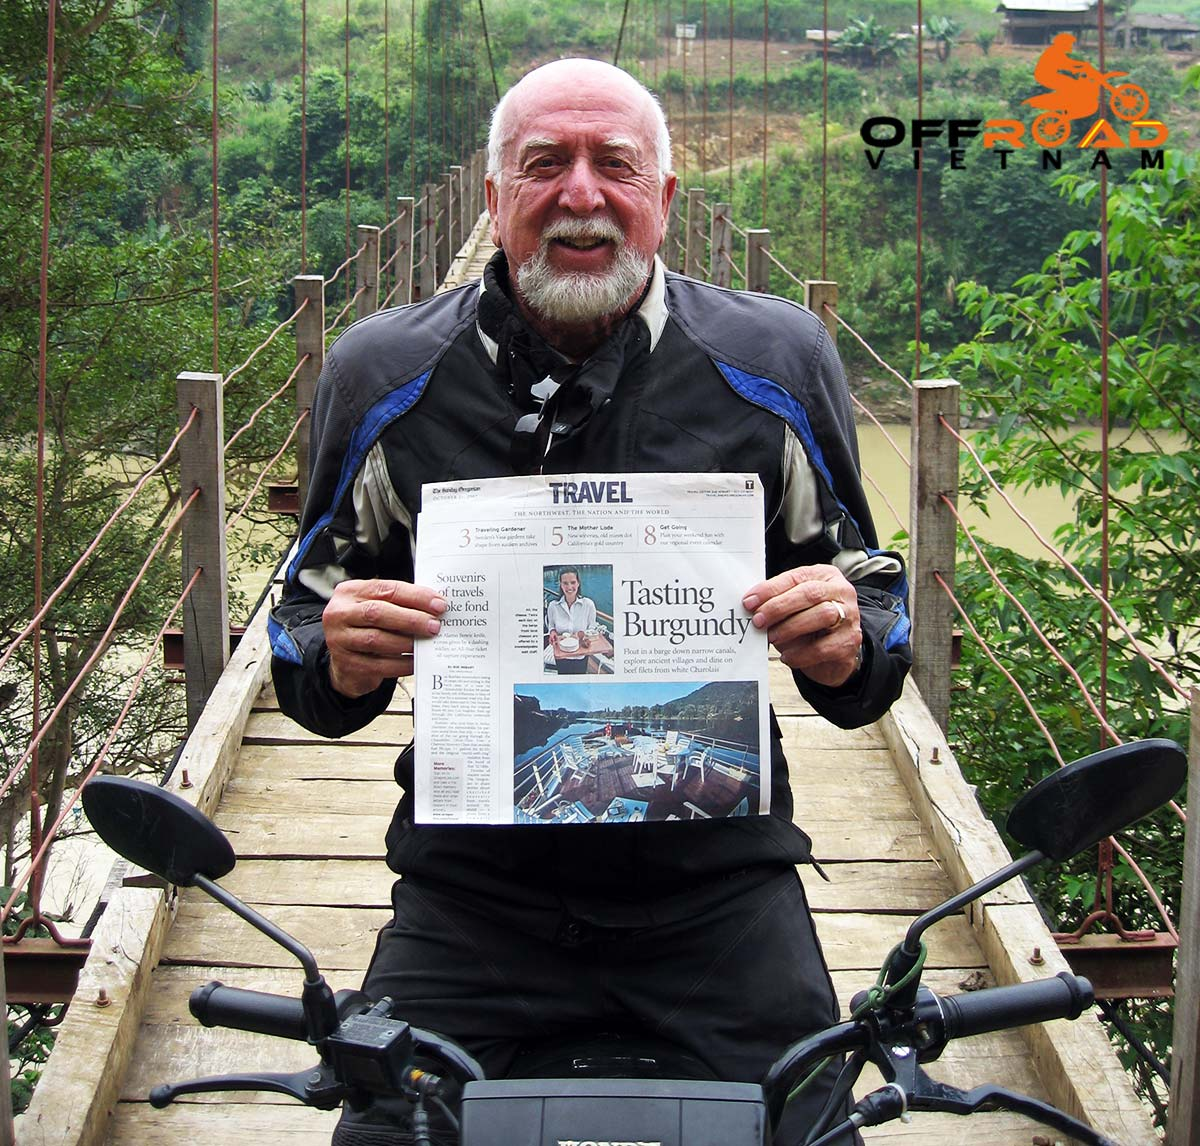 Offroad Vietnam Motorbike Adventures - Forbes Traveler Online with Charles Drummond words.